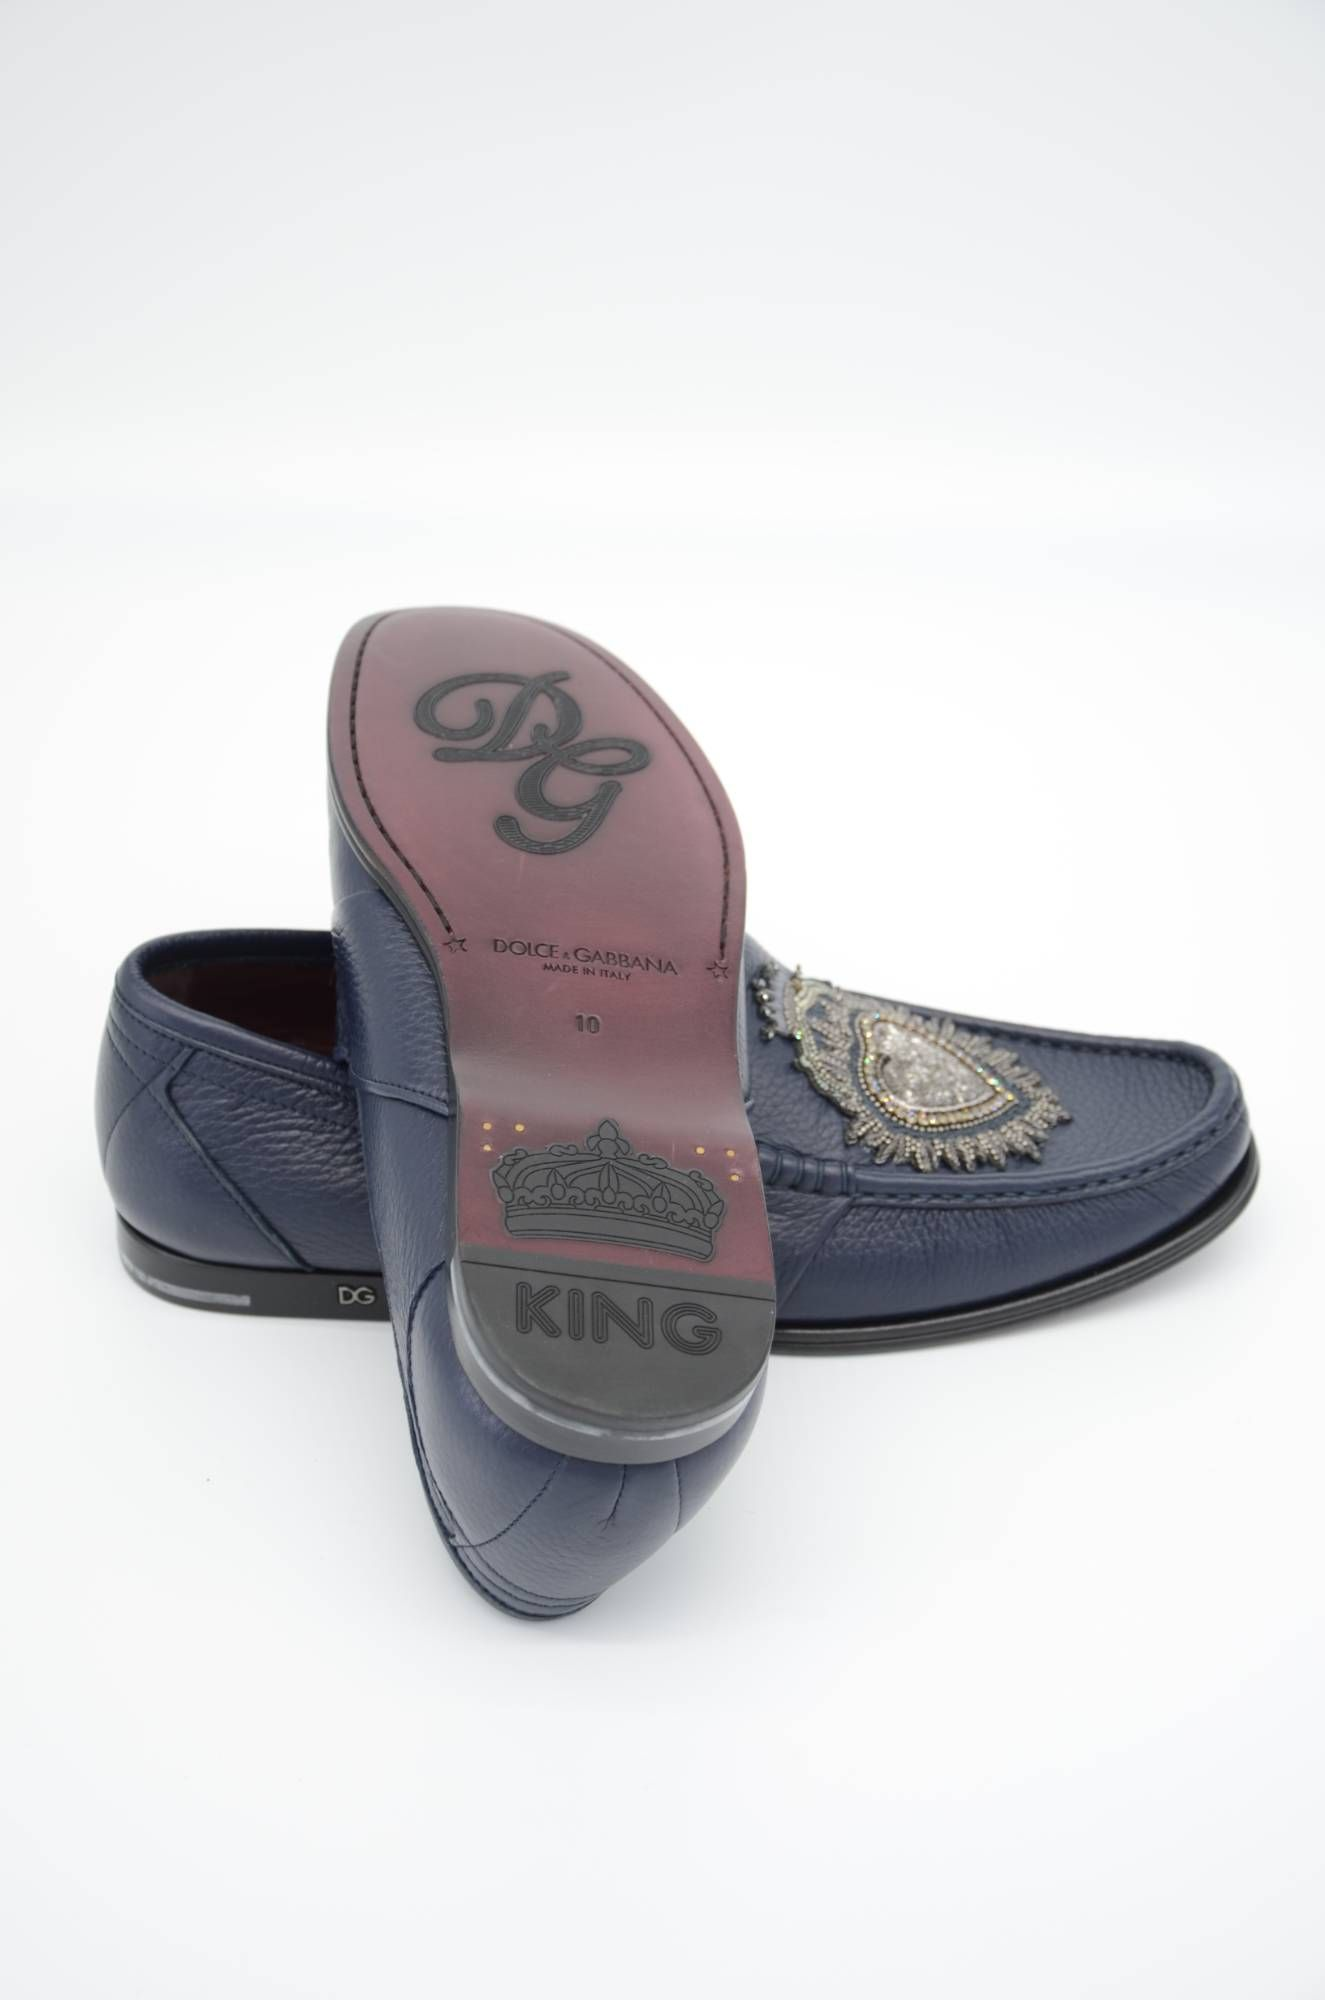 Dolce & Gabbana Men Heart Leather Loafers